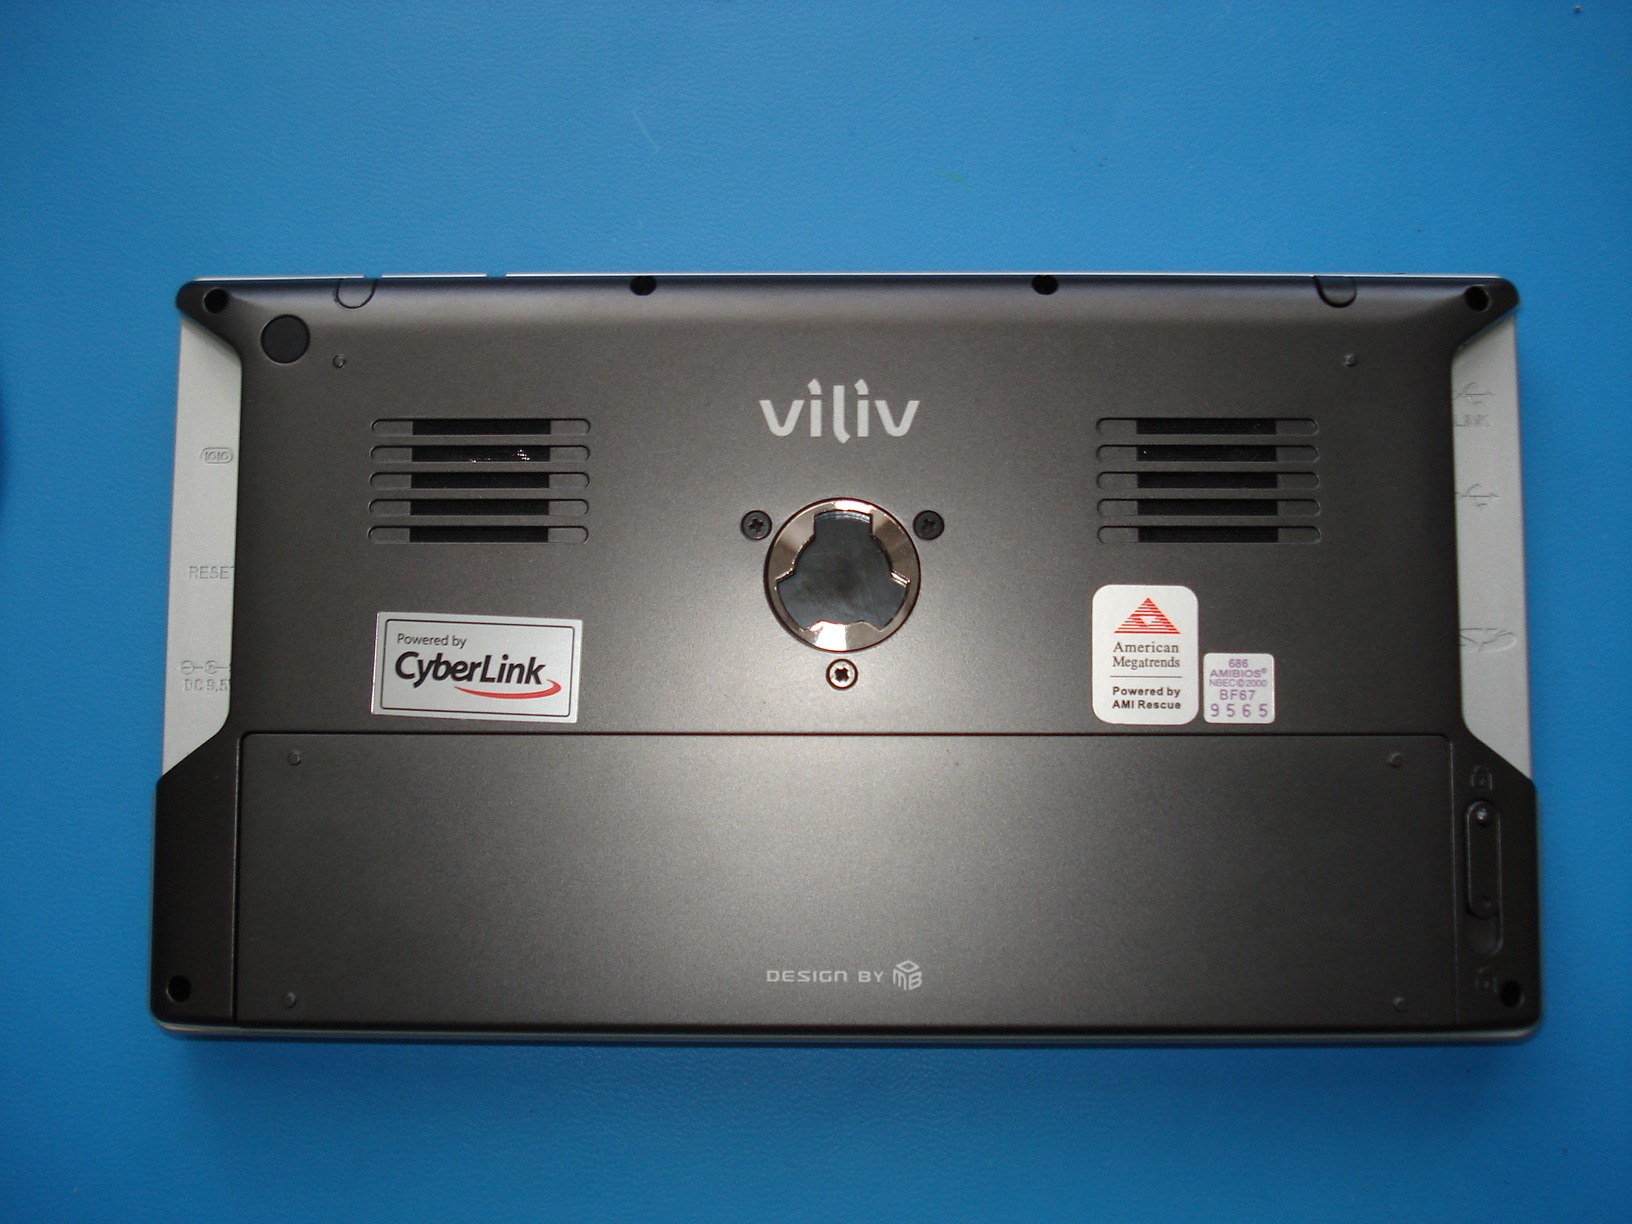 Viliv s5 win7 drivers